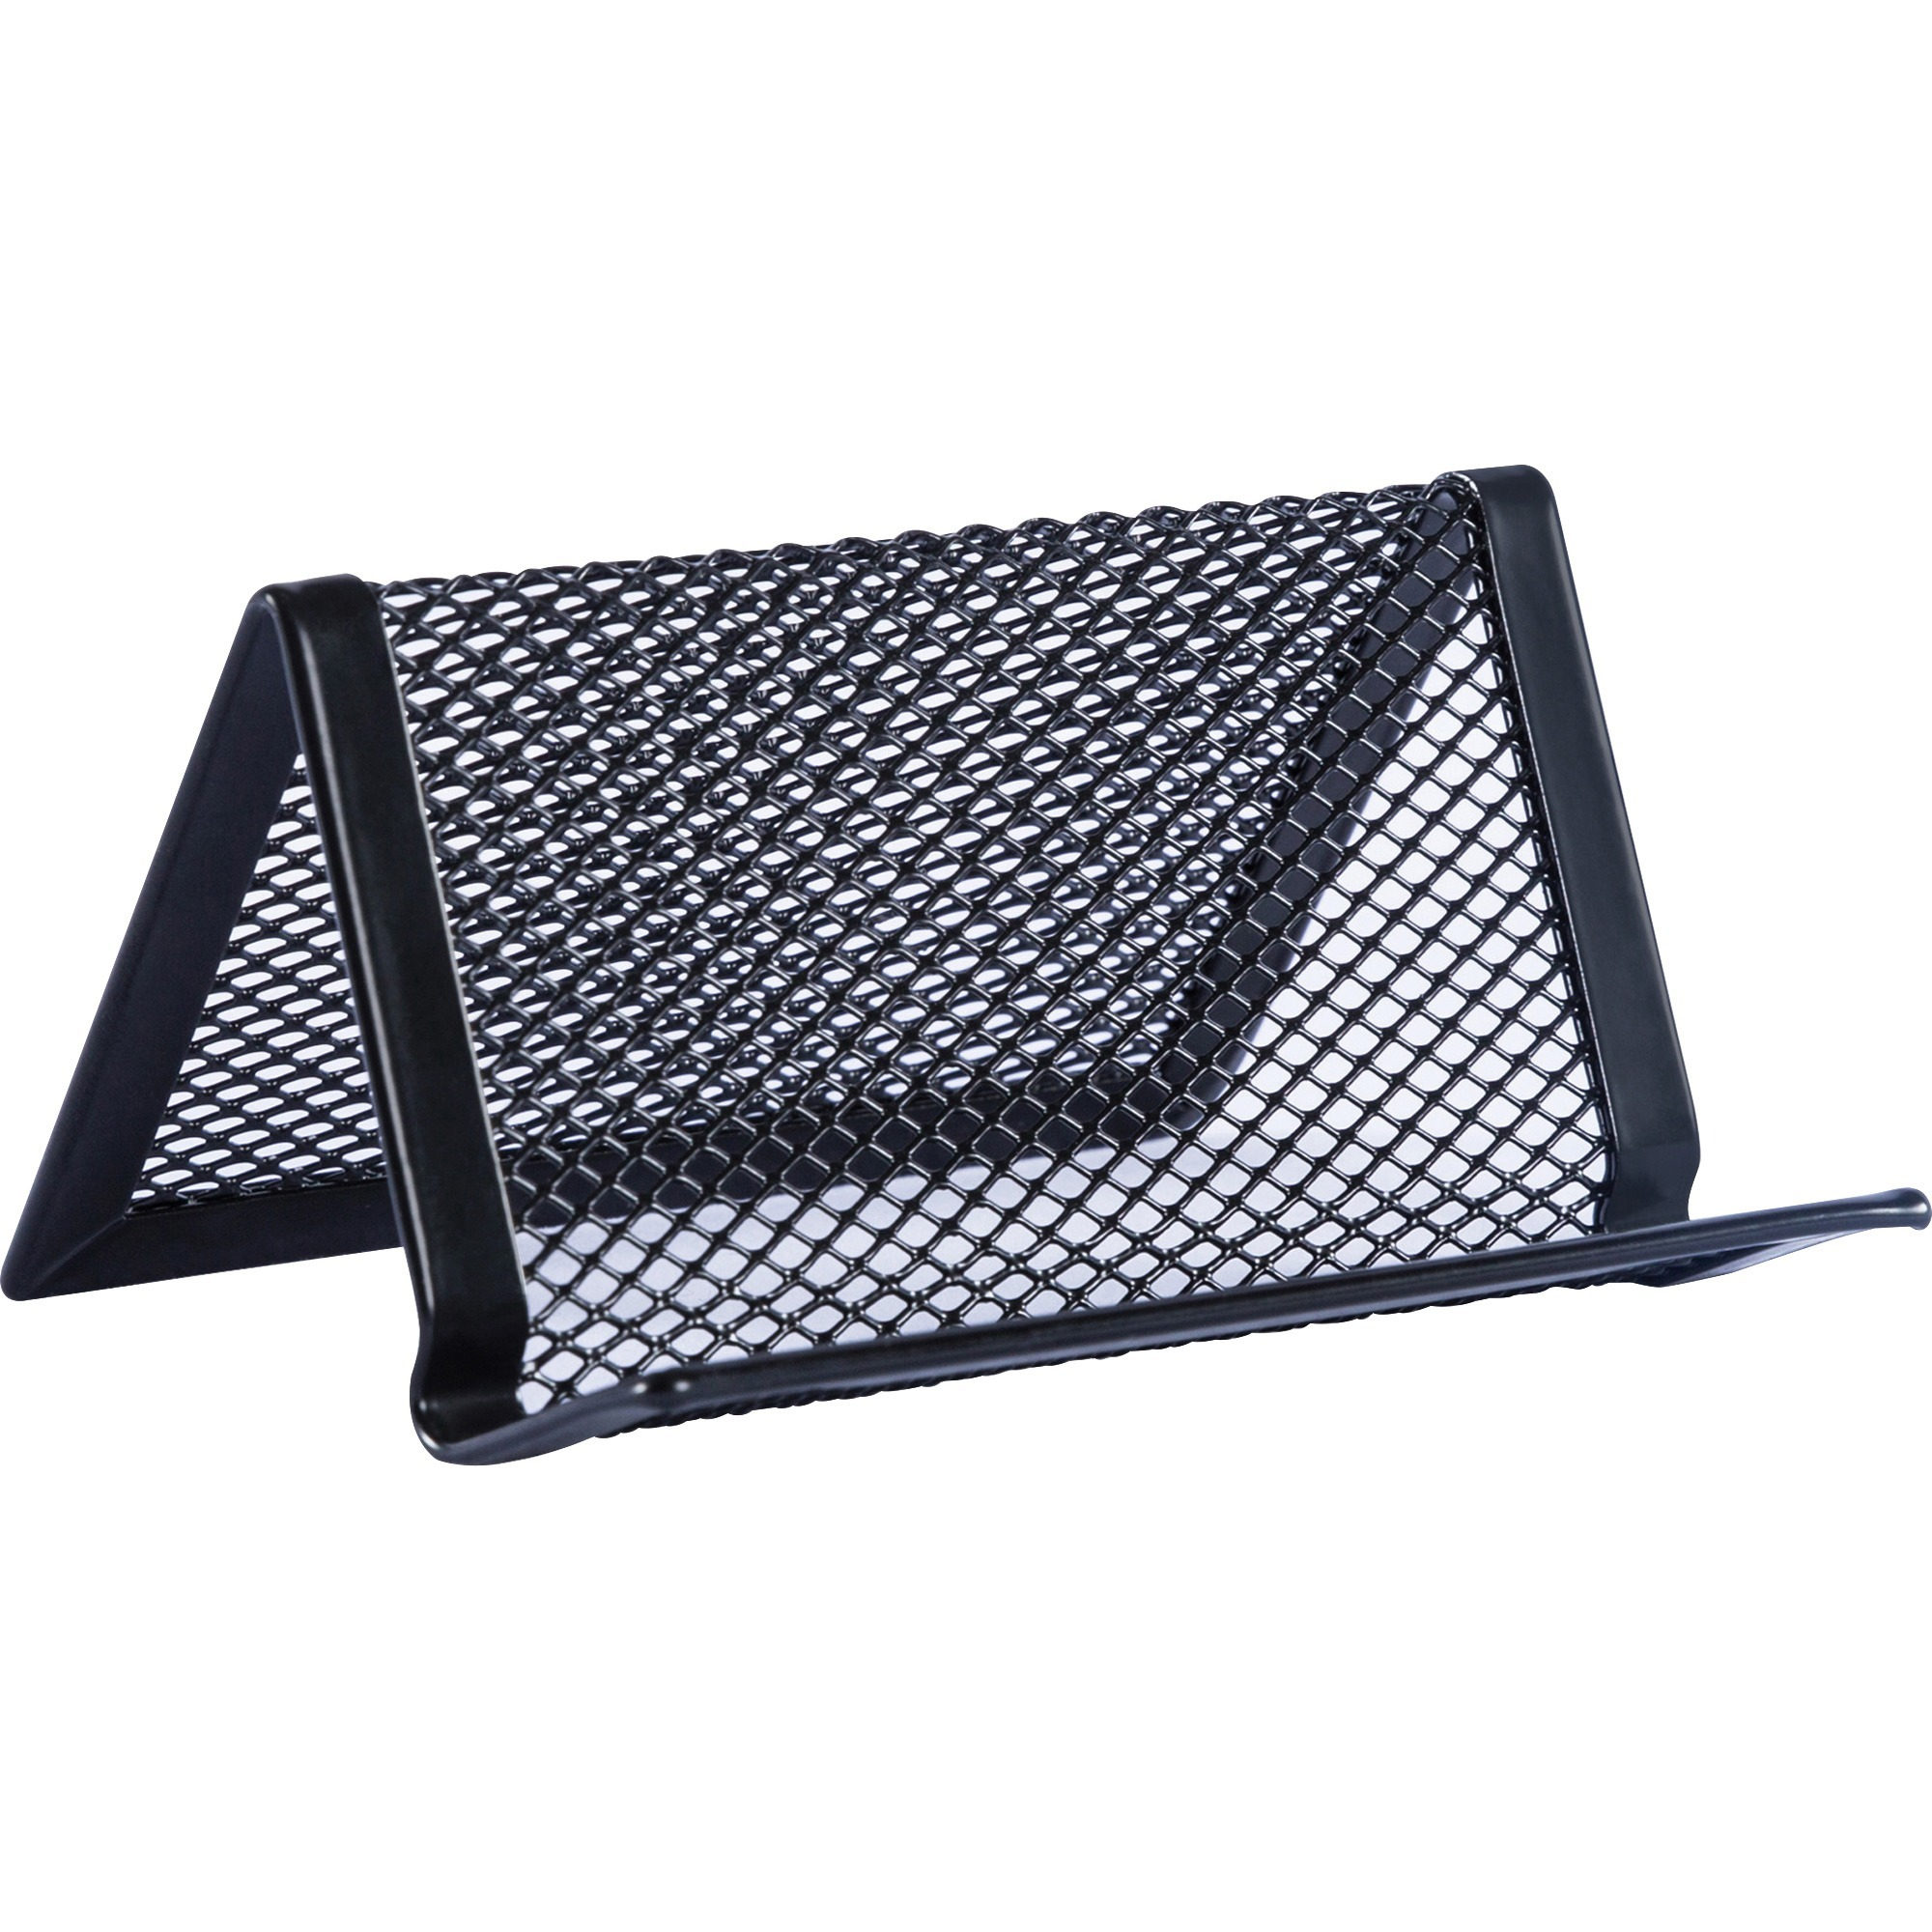 Challenge industries ltd office supplies desk organizers black meshwire business card holder each reheart Images